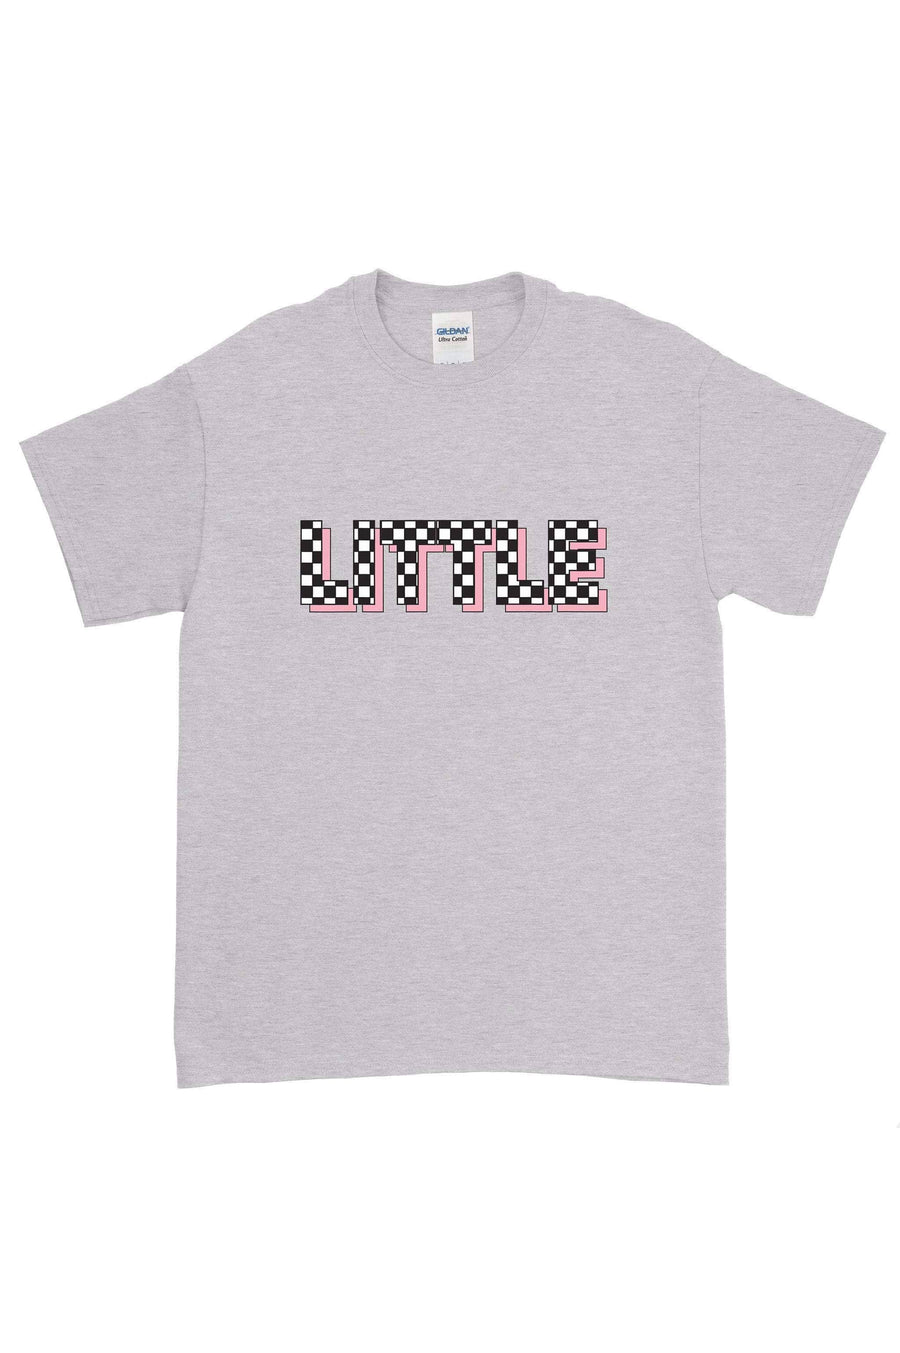 Pink Checkered Big Little Gildan Short Sleeve Tee